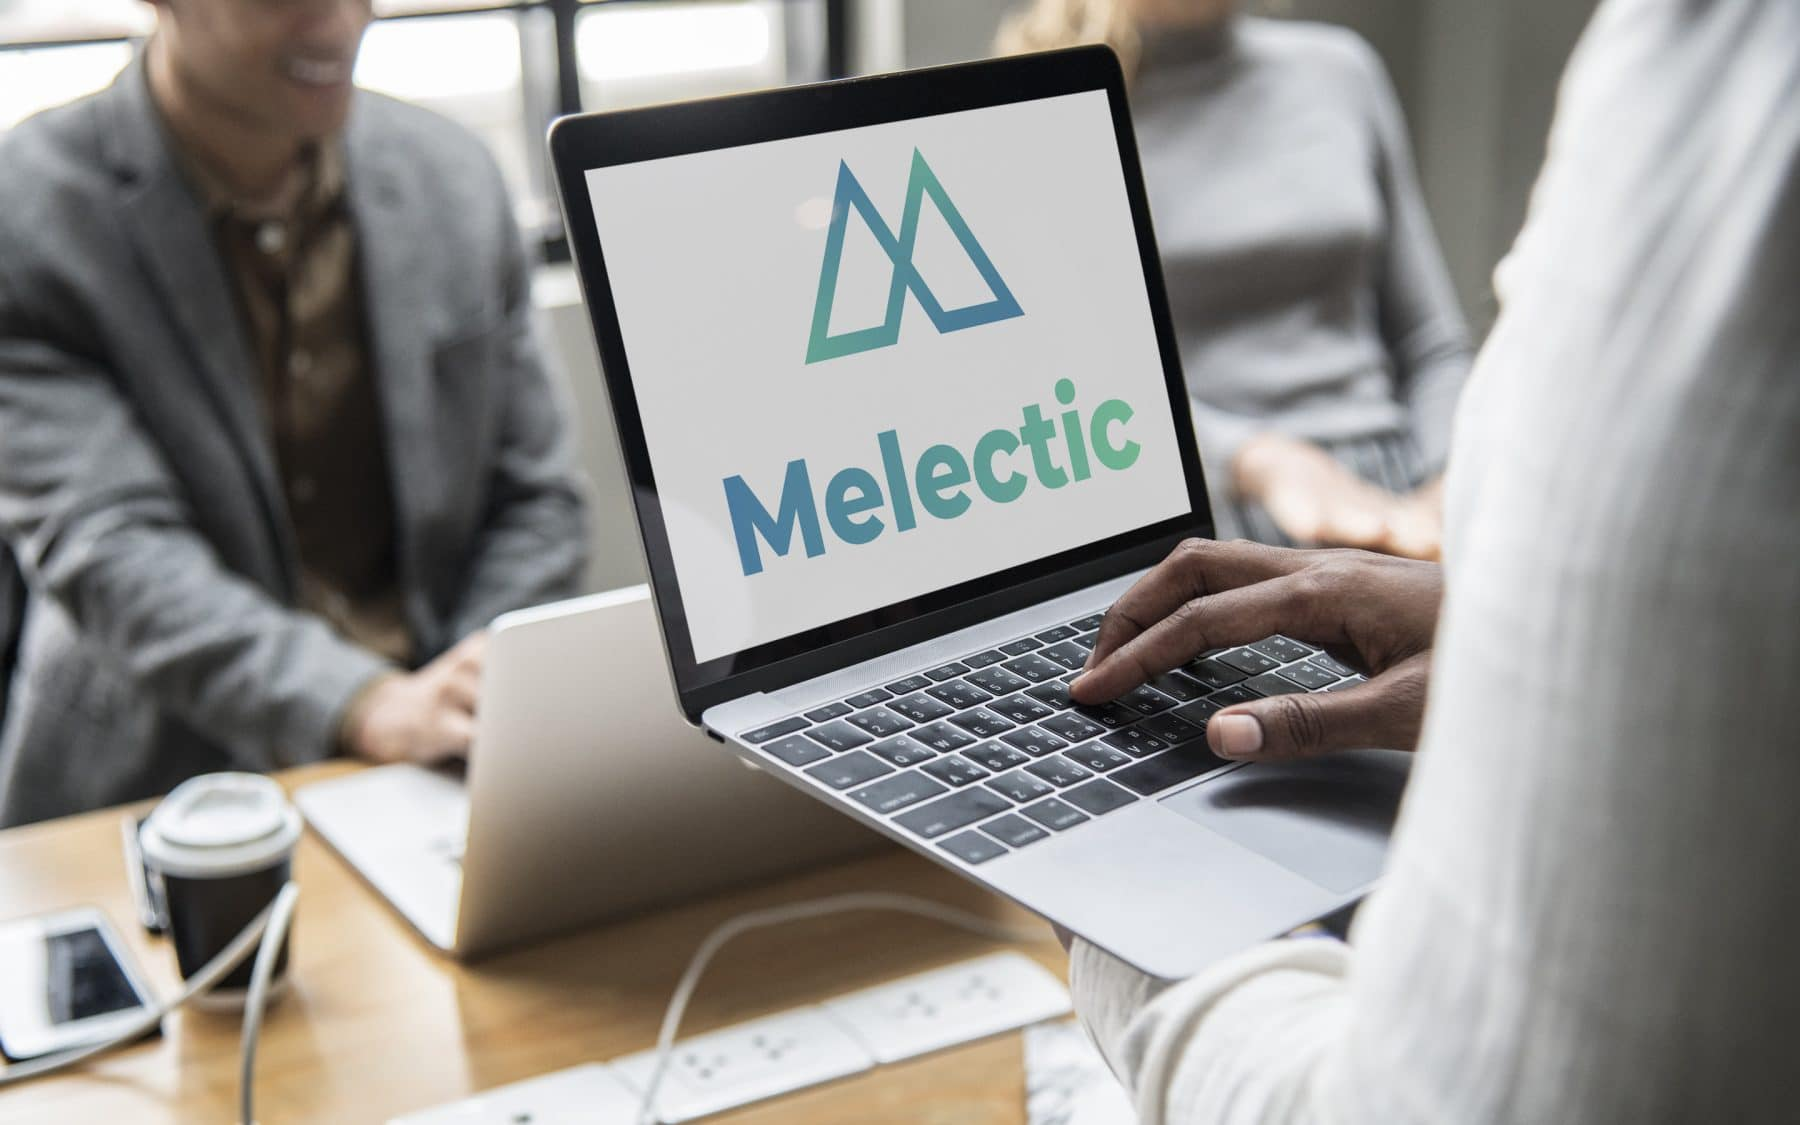 Melectic